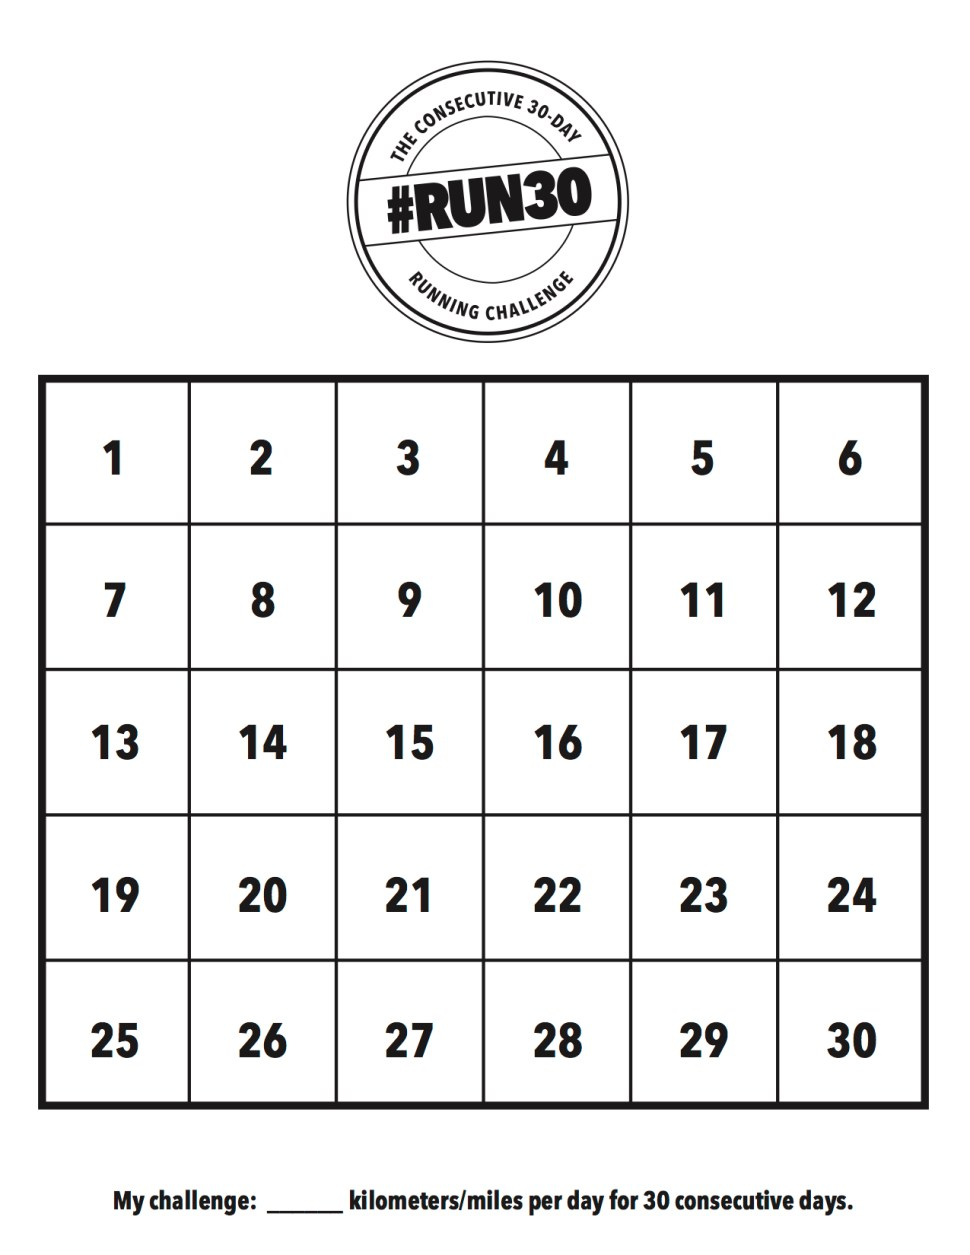 RUN30 Prtinable Calendar